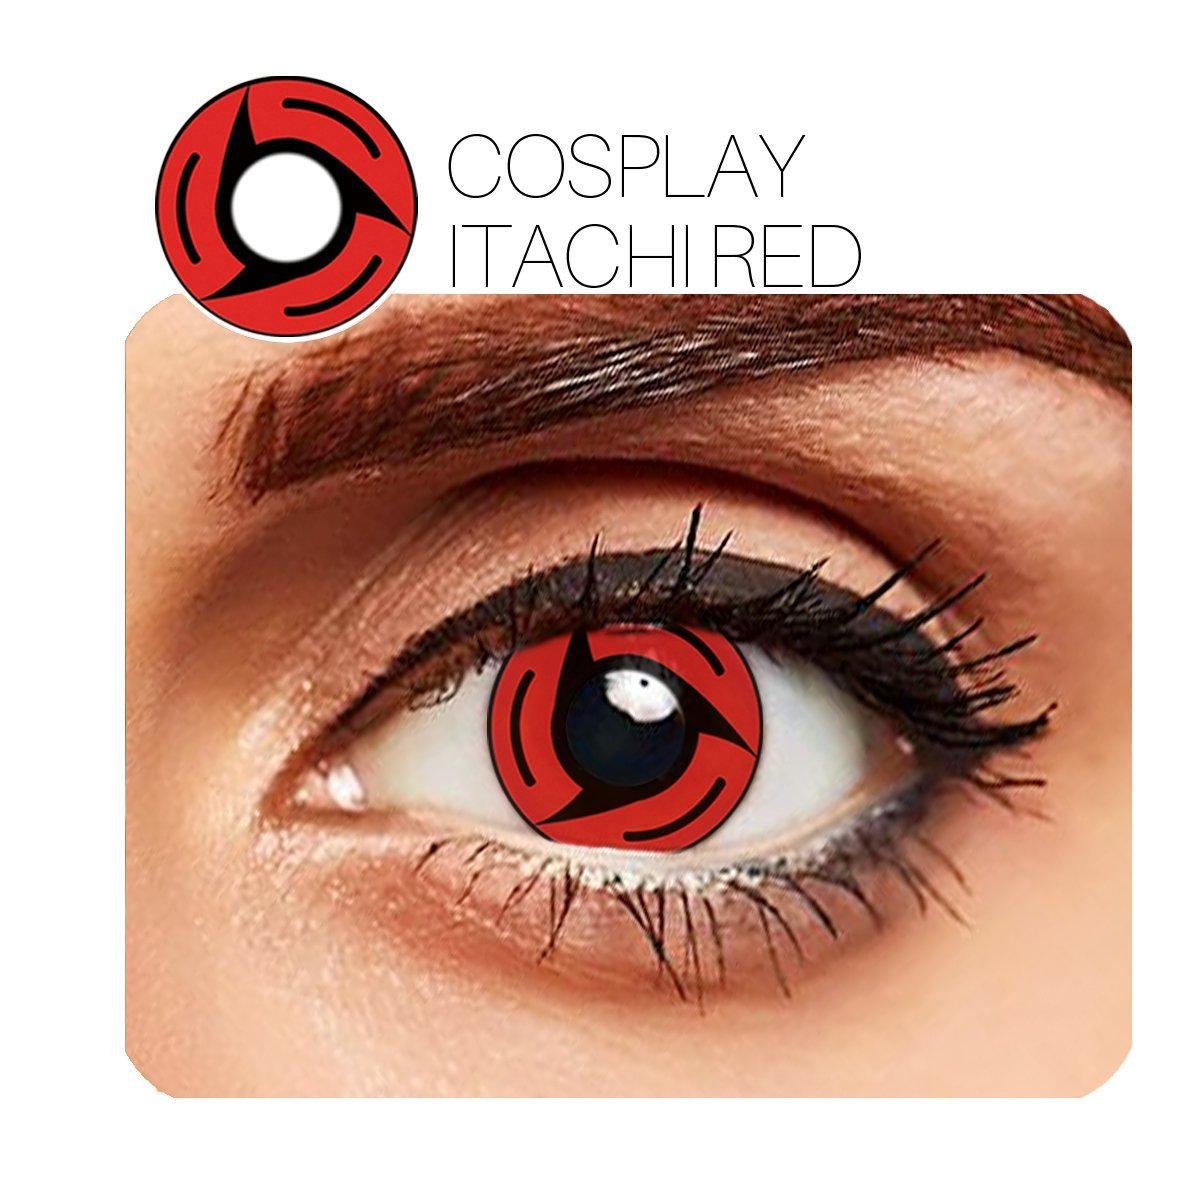 Itachi Cosplay Red (12 Month) Contact Lenses